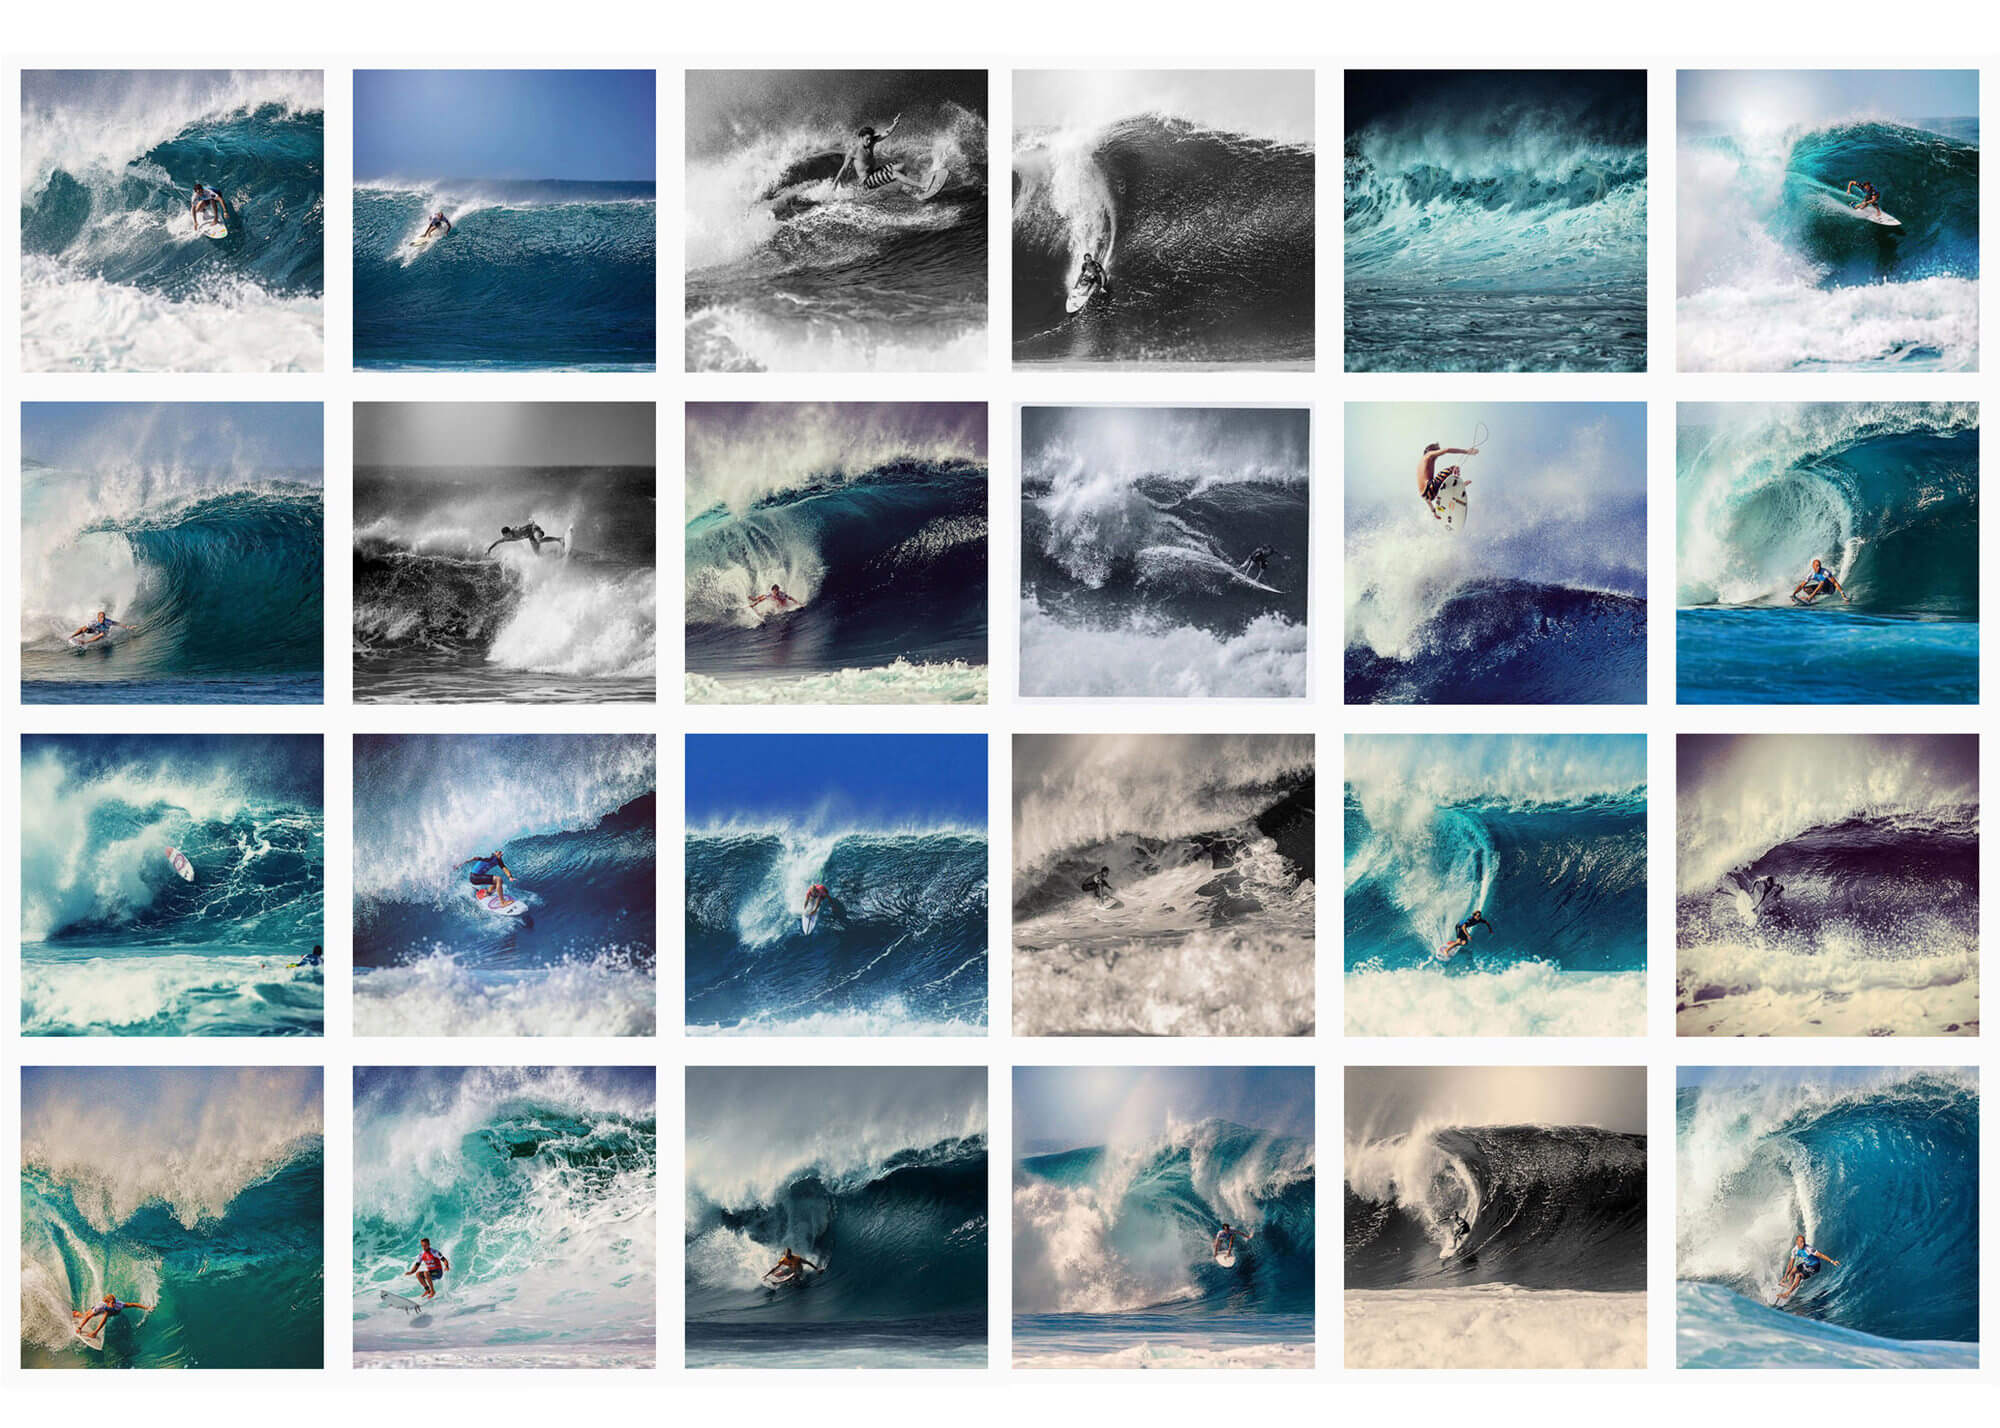 Grid of surf images